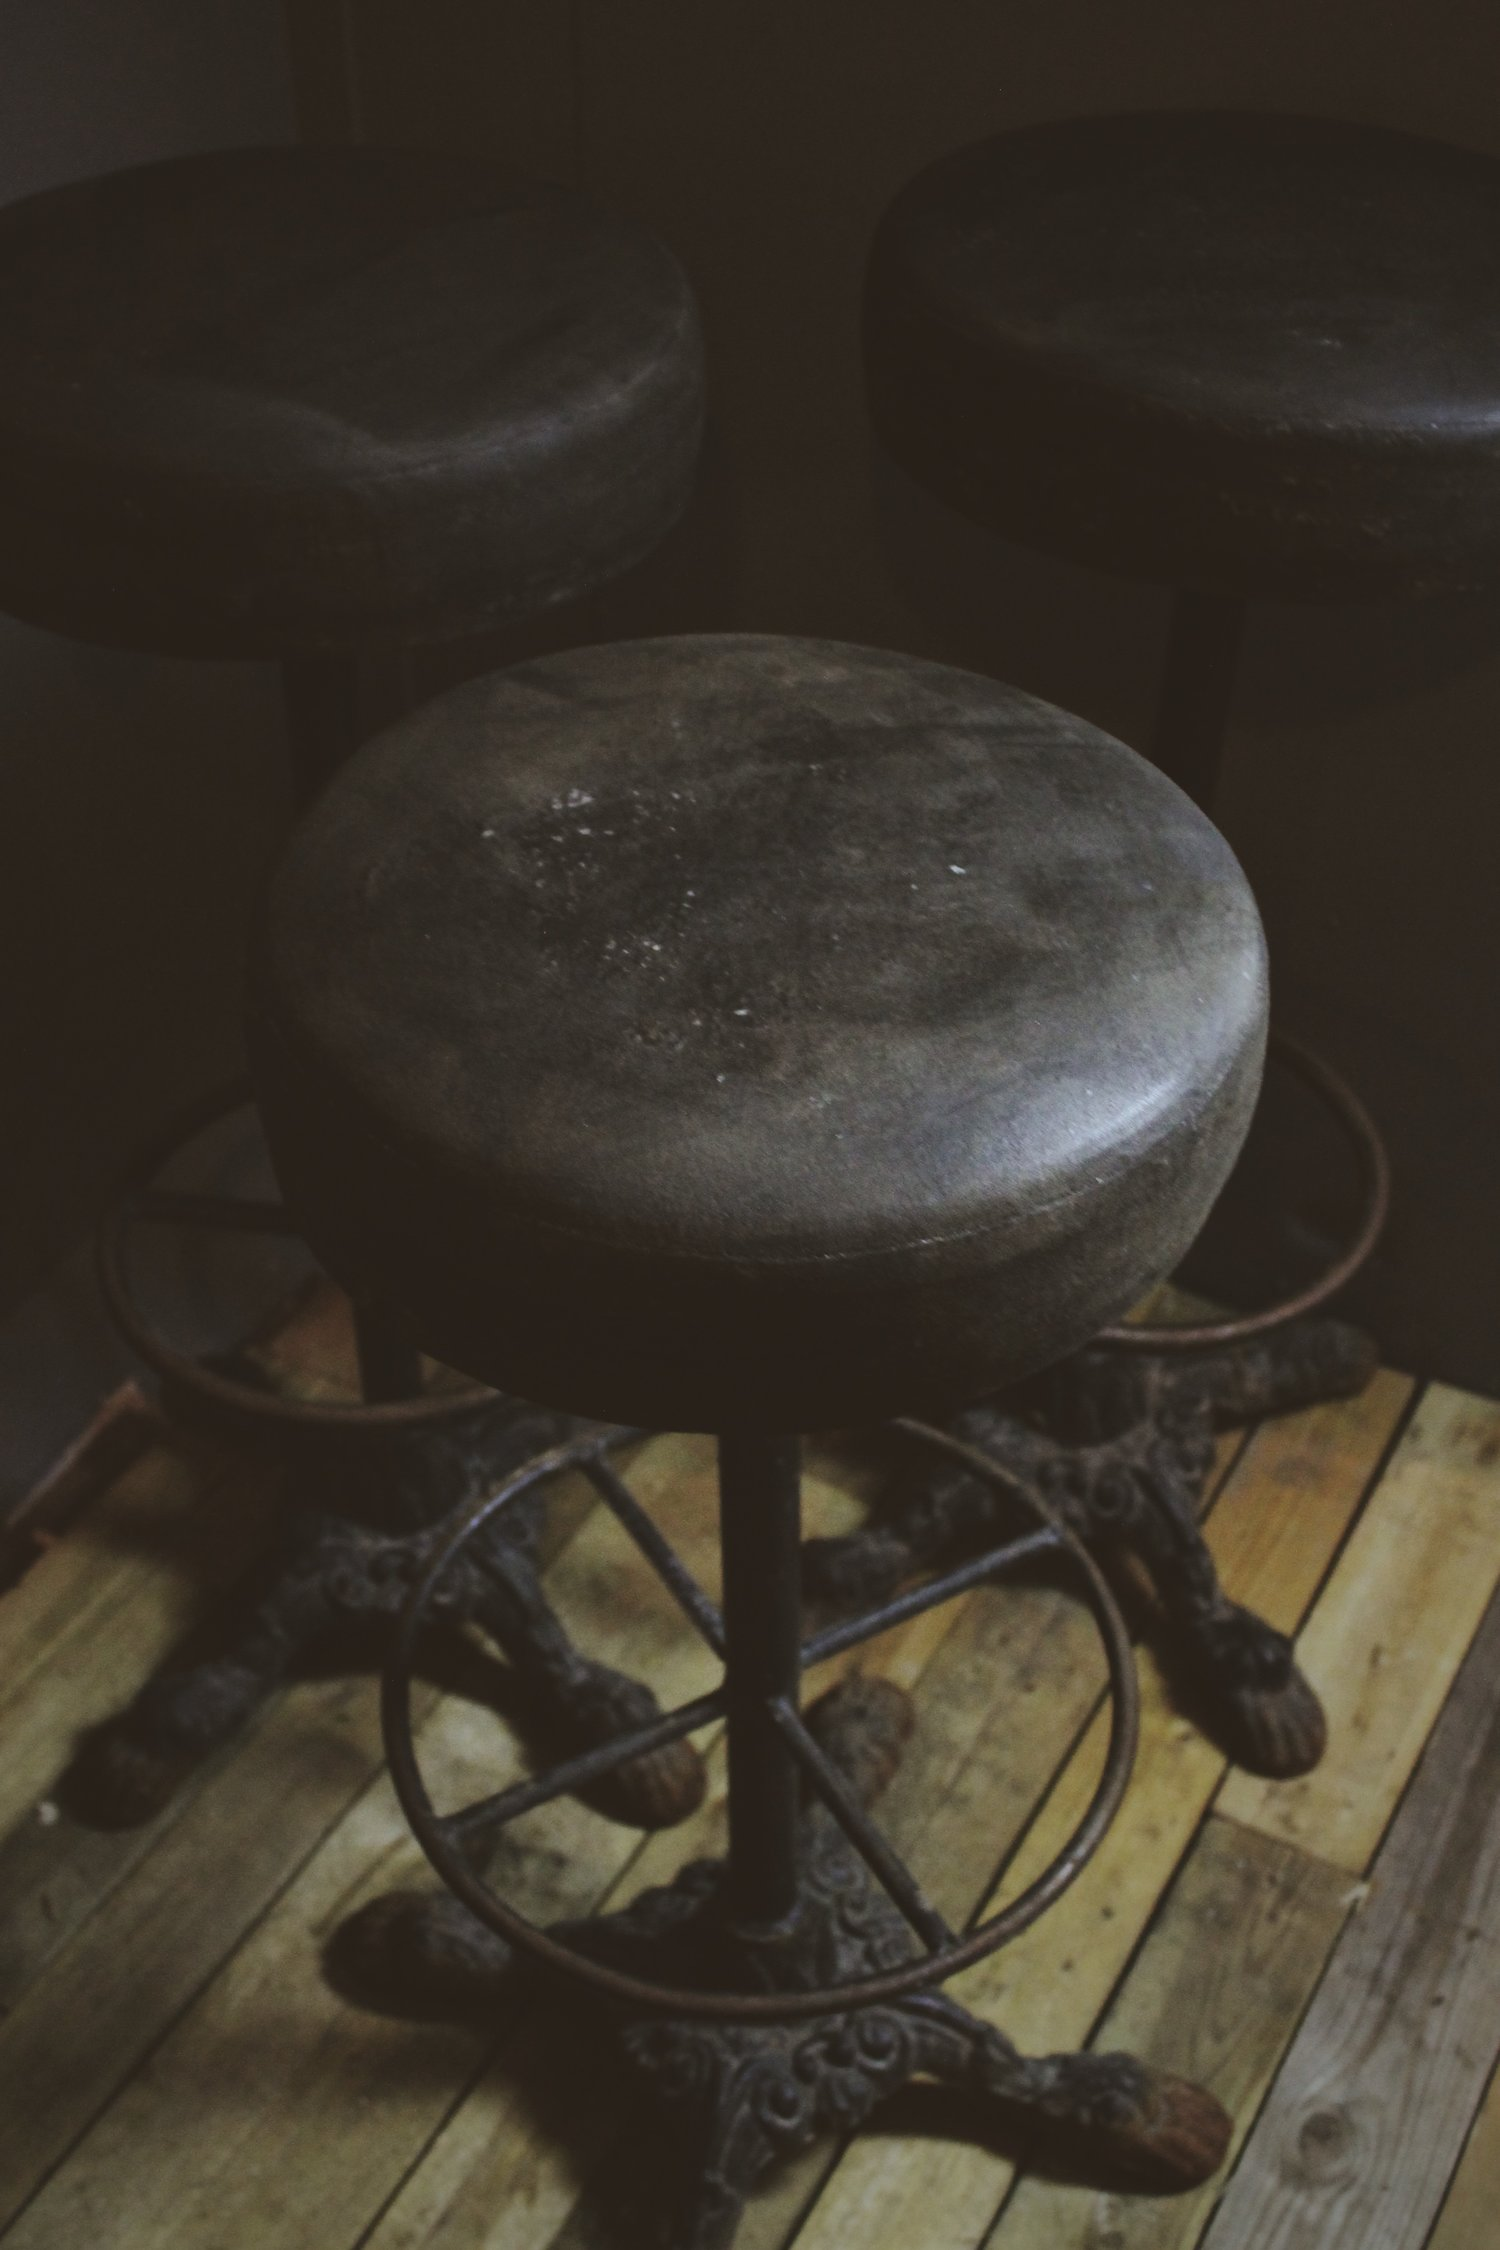 Groovy Antique Bar Stools With Heavy Cast Iron Claw Foot Base Gmtry Best Dining Table And Chair Ideas Images Gmtryco